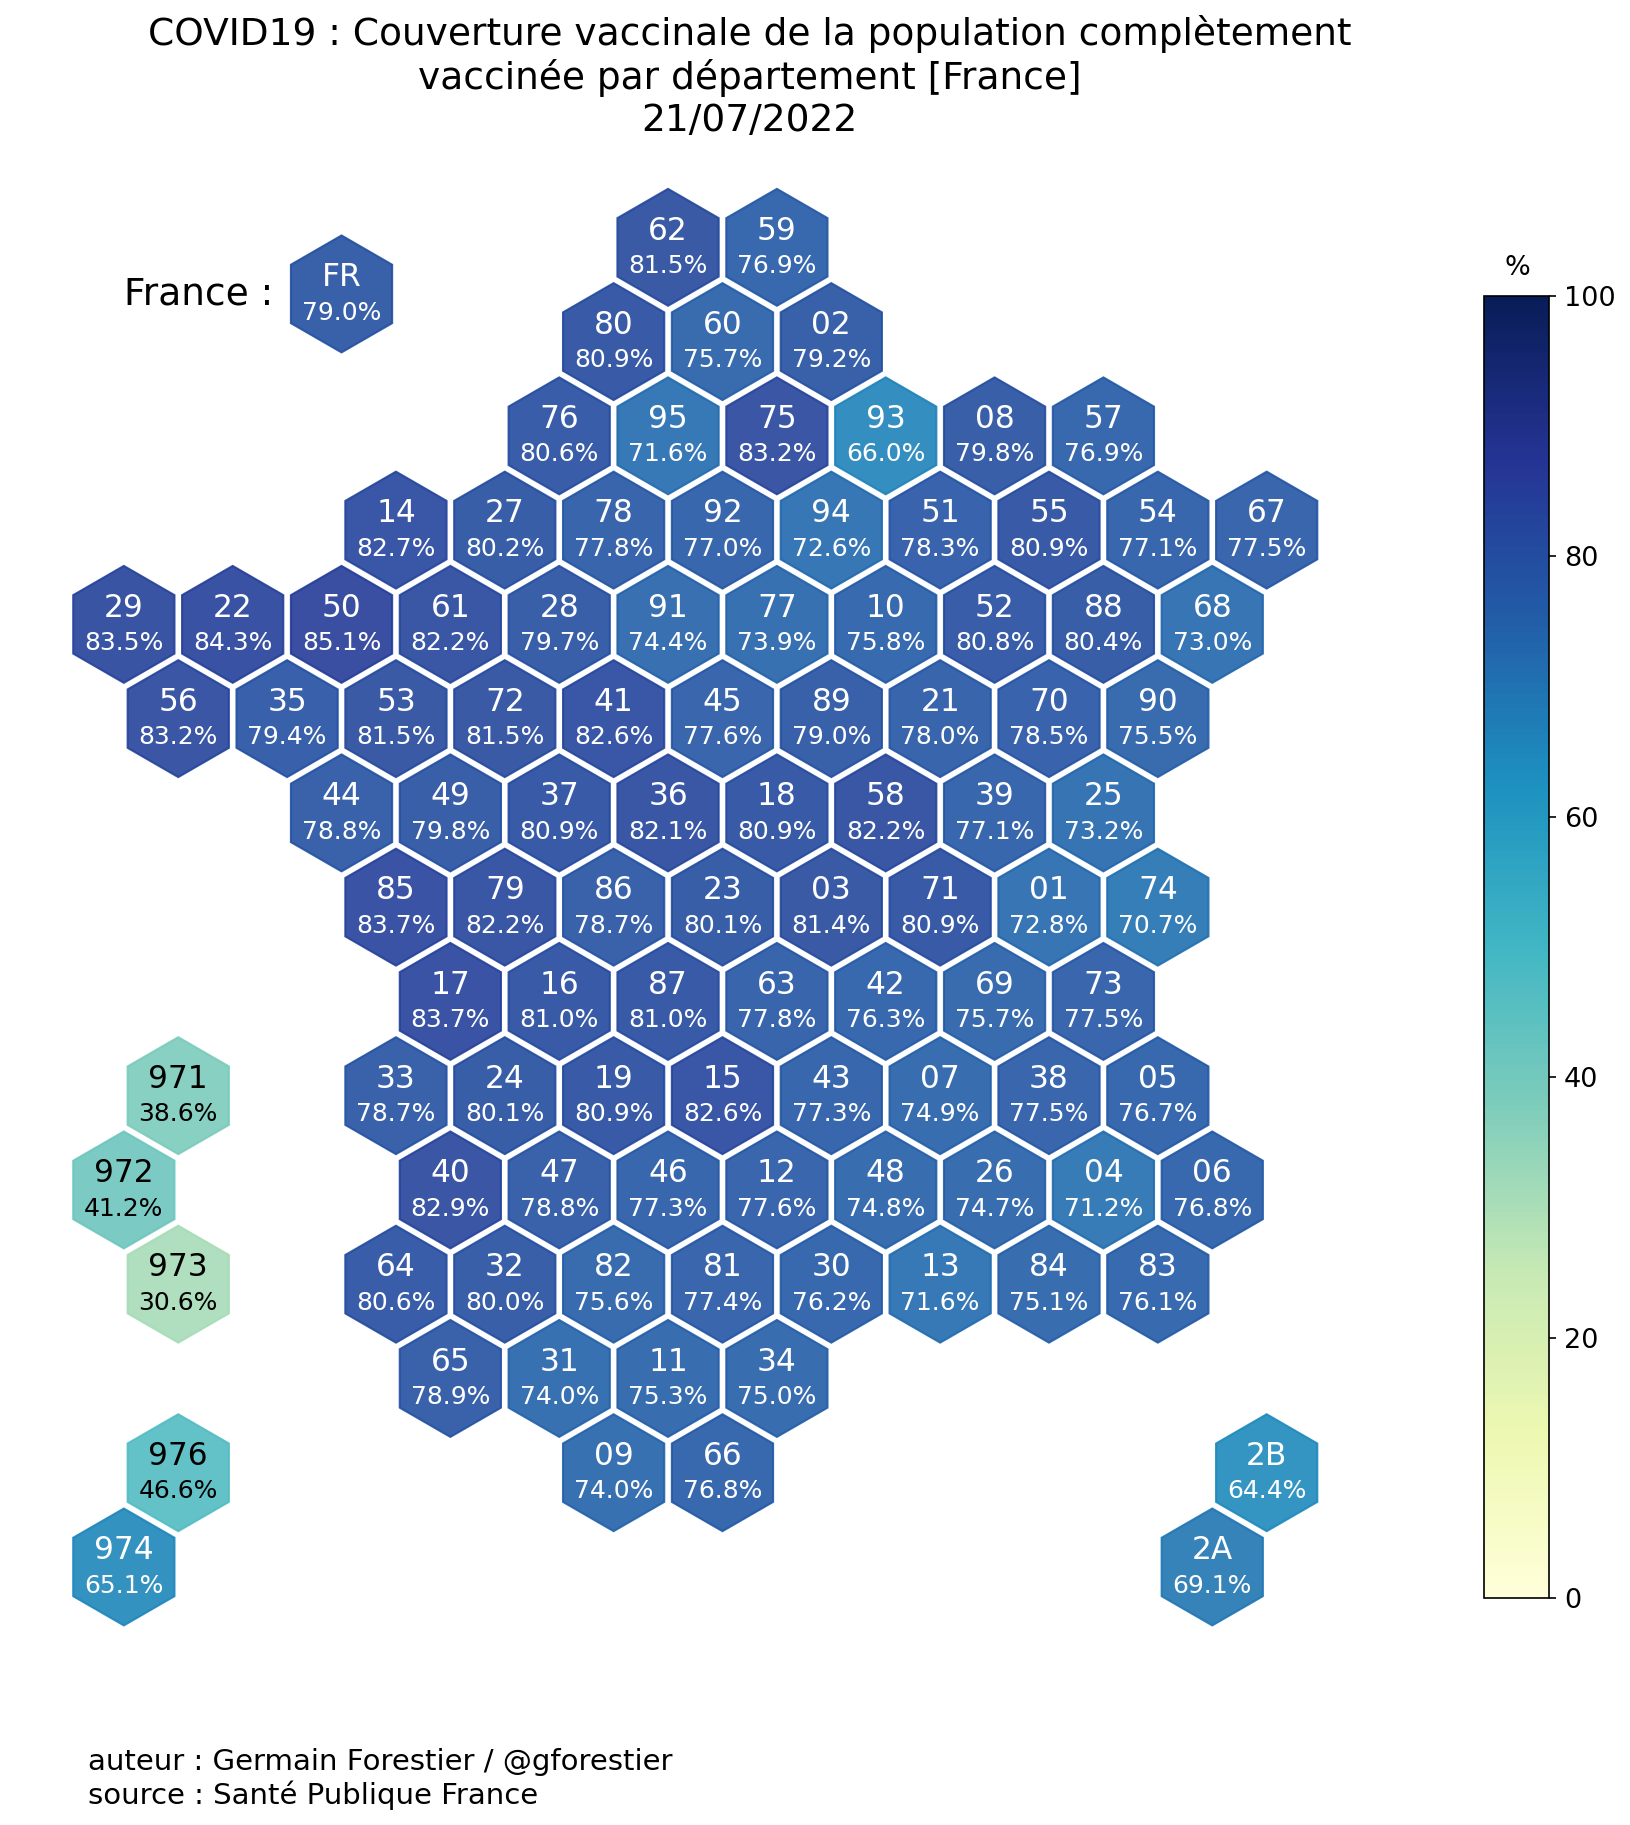 https://germain-forestier.info/covid/vaccin/hex-map-doses-pct-dpt-2.png